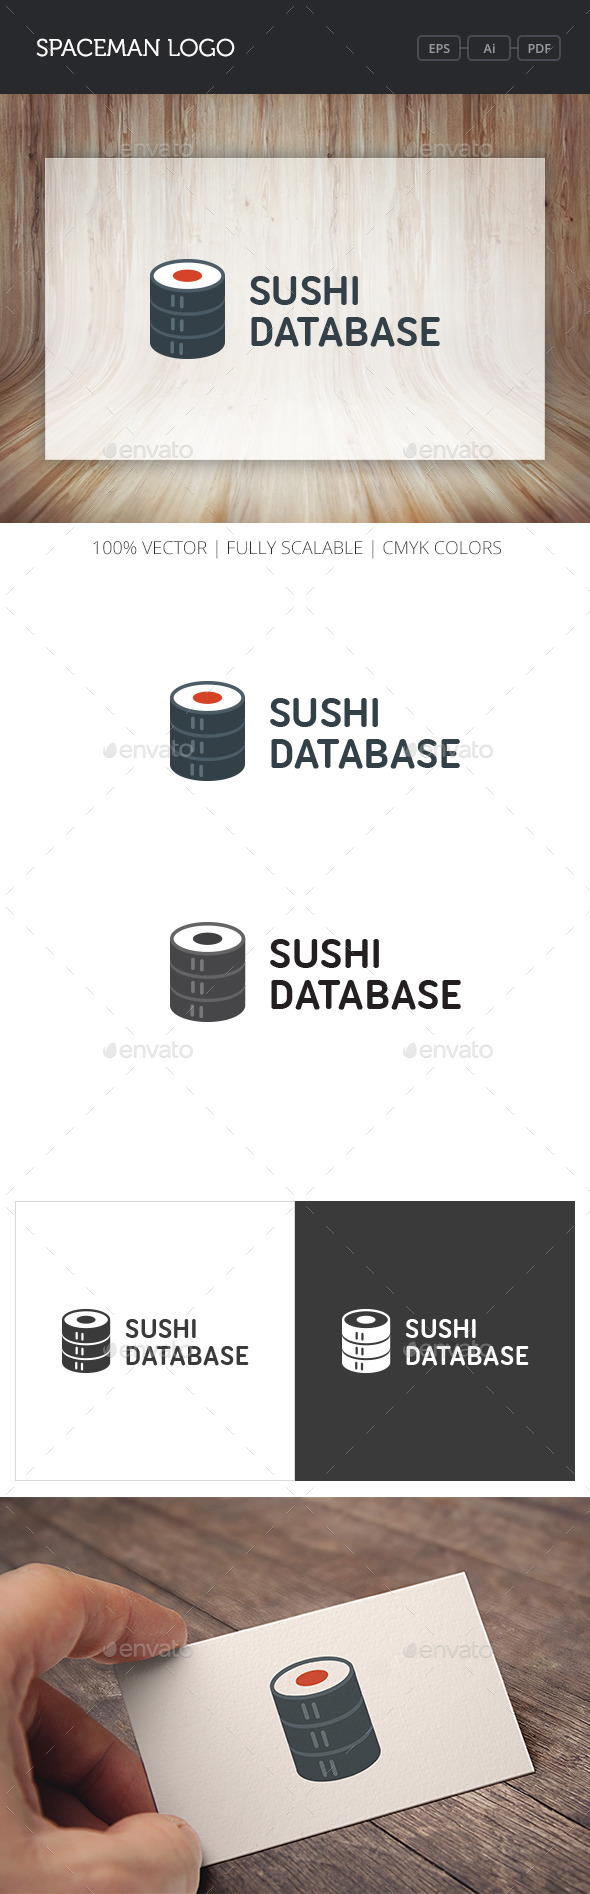 GraphicRiver Sushi Database Logo 10756405